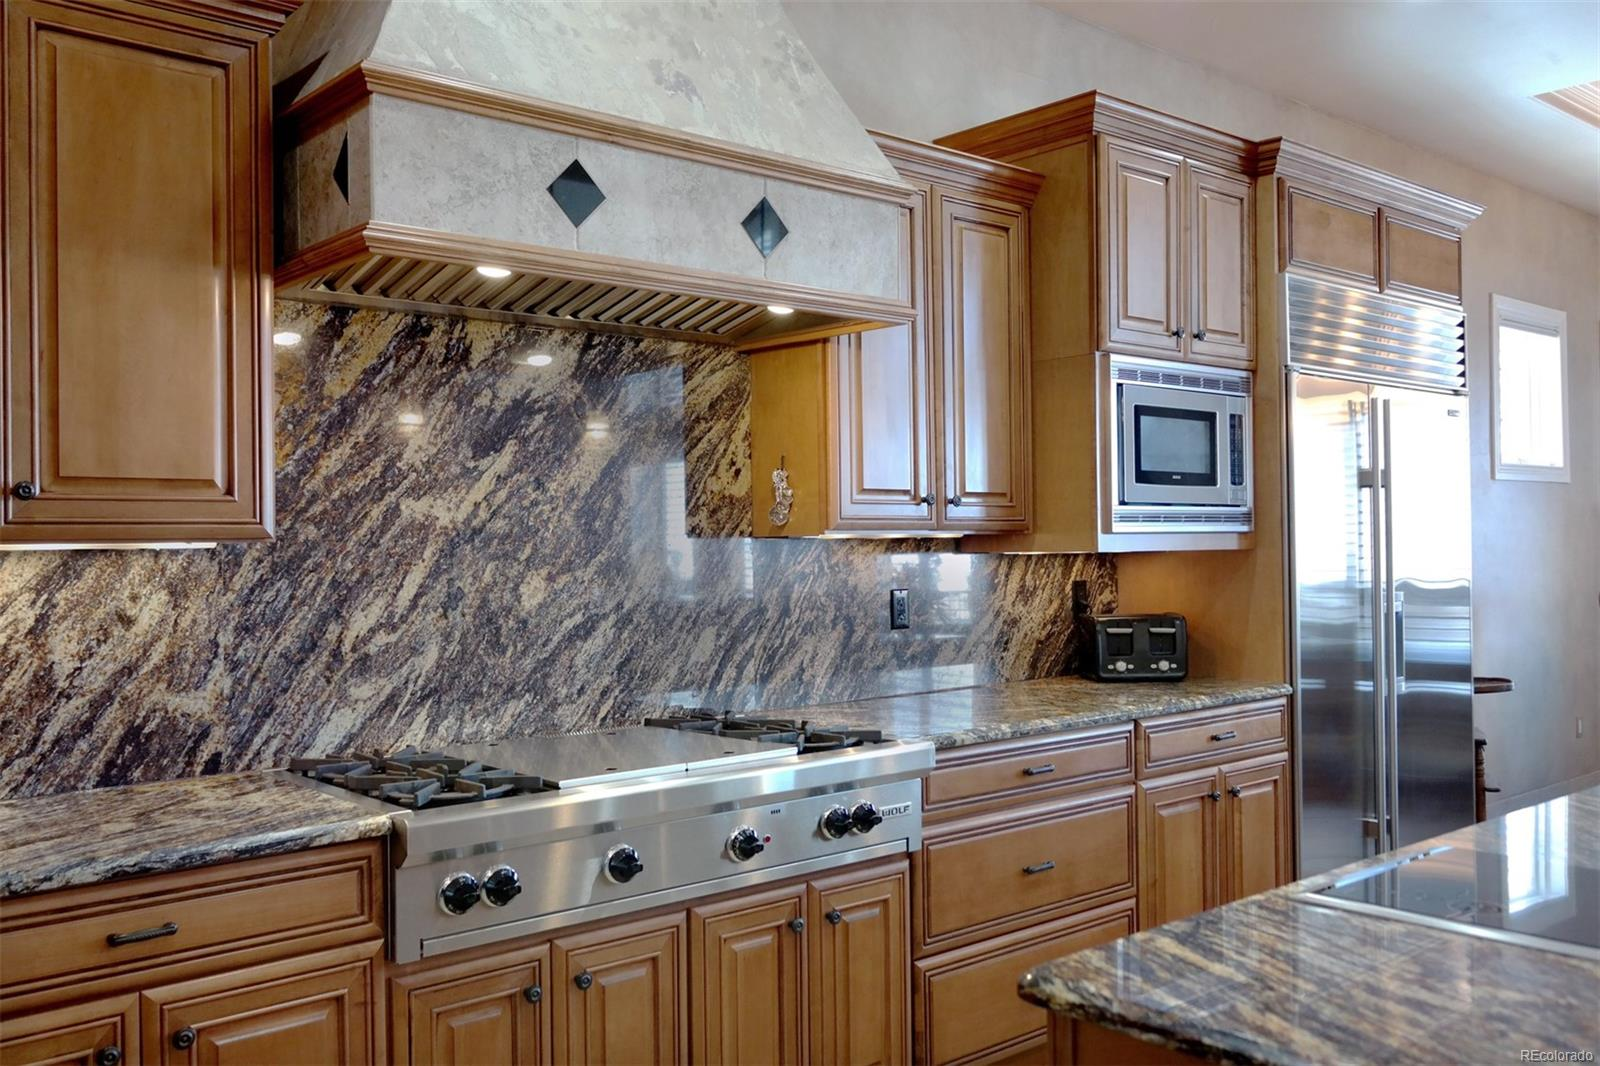 Wolf Gas Cooktop & Custom Range Hood